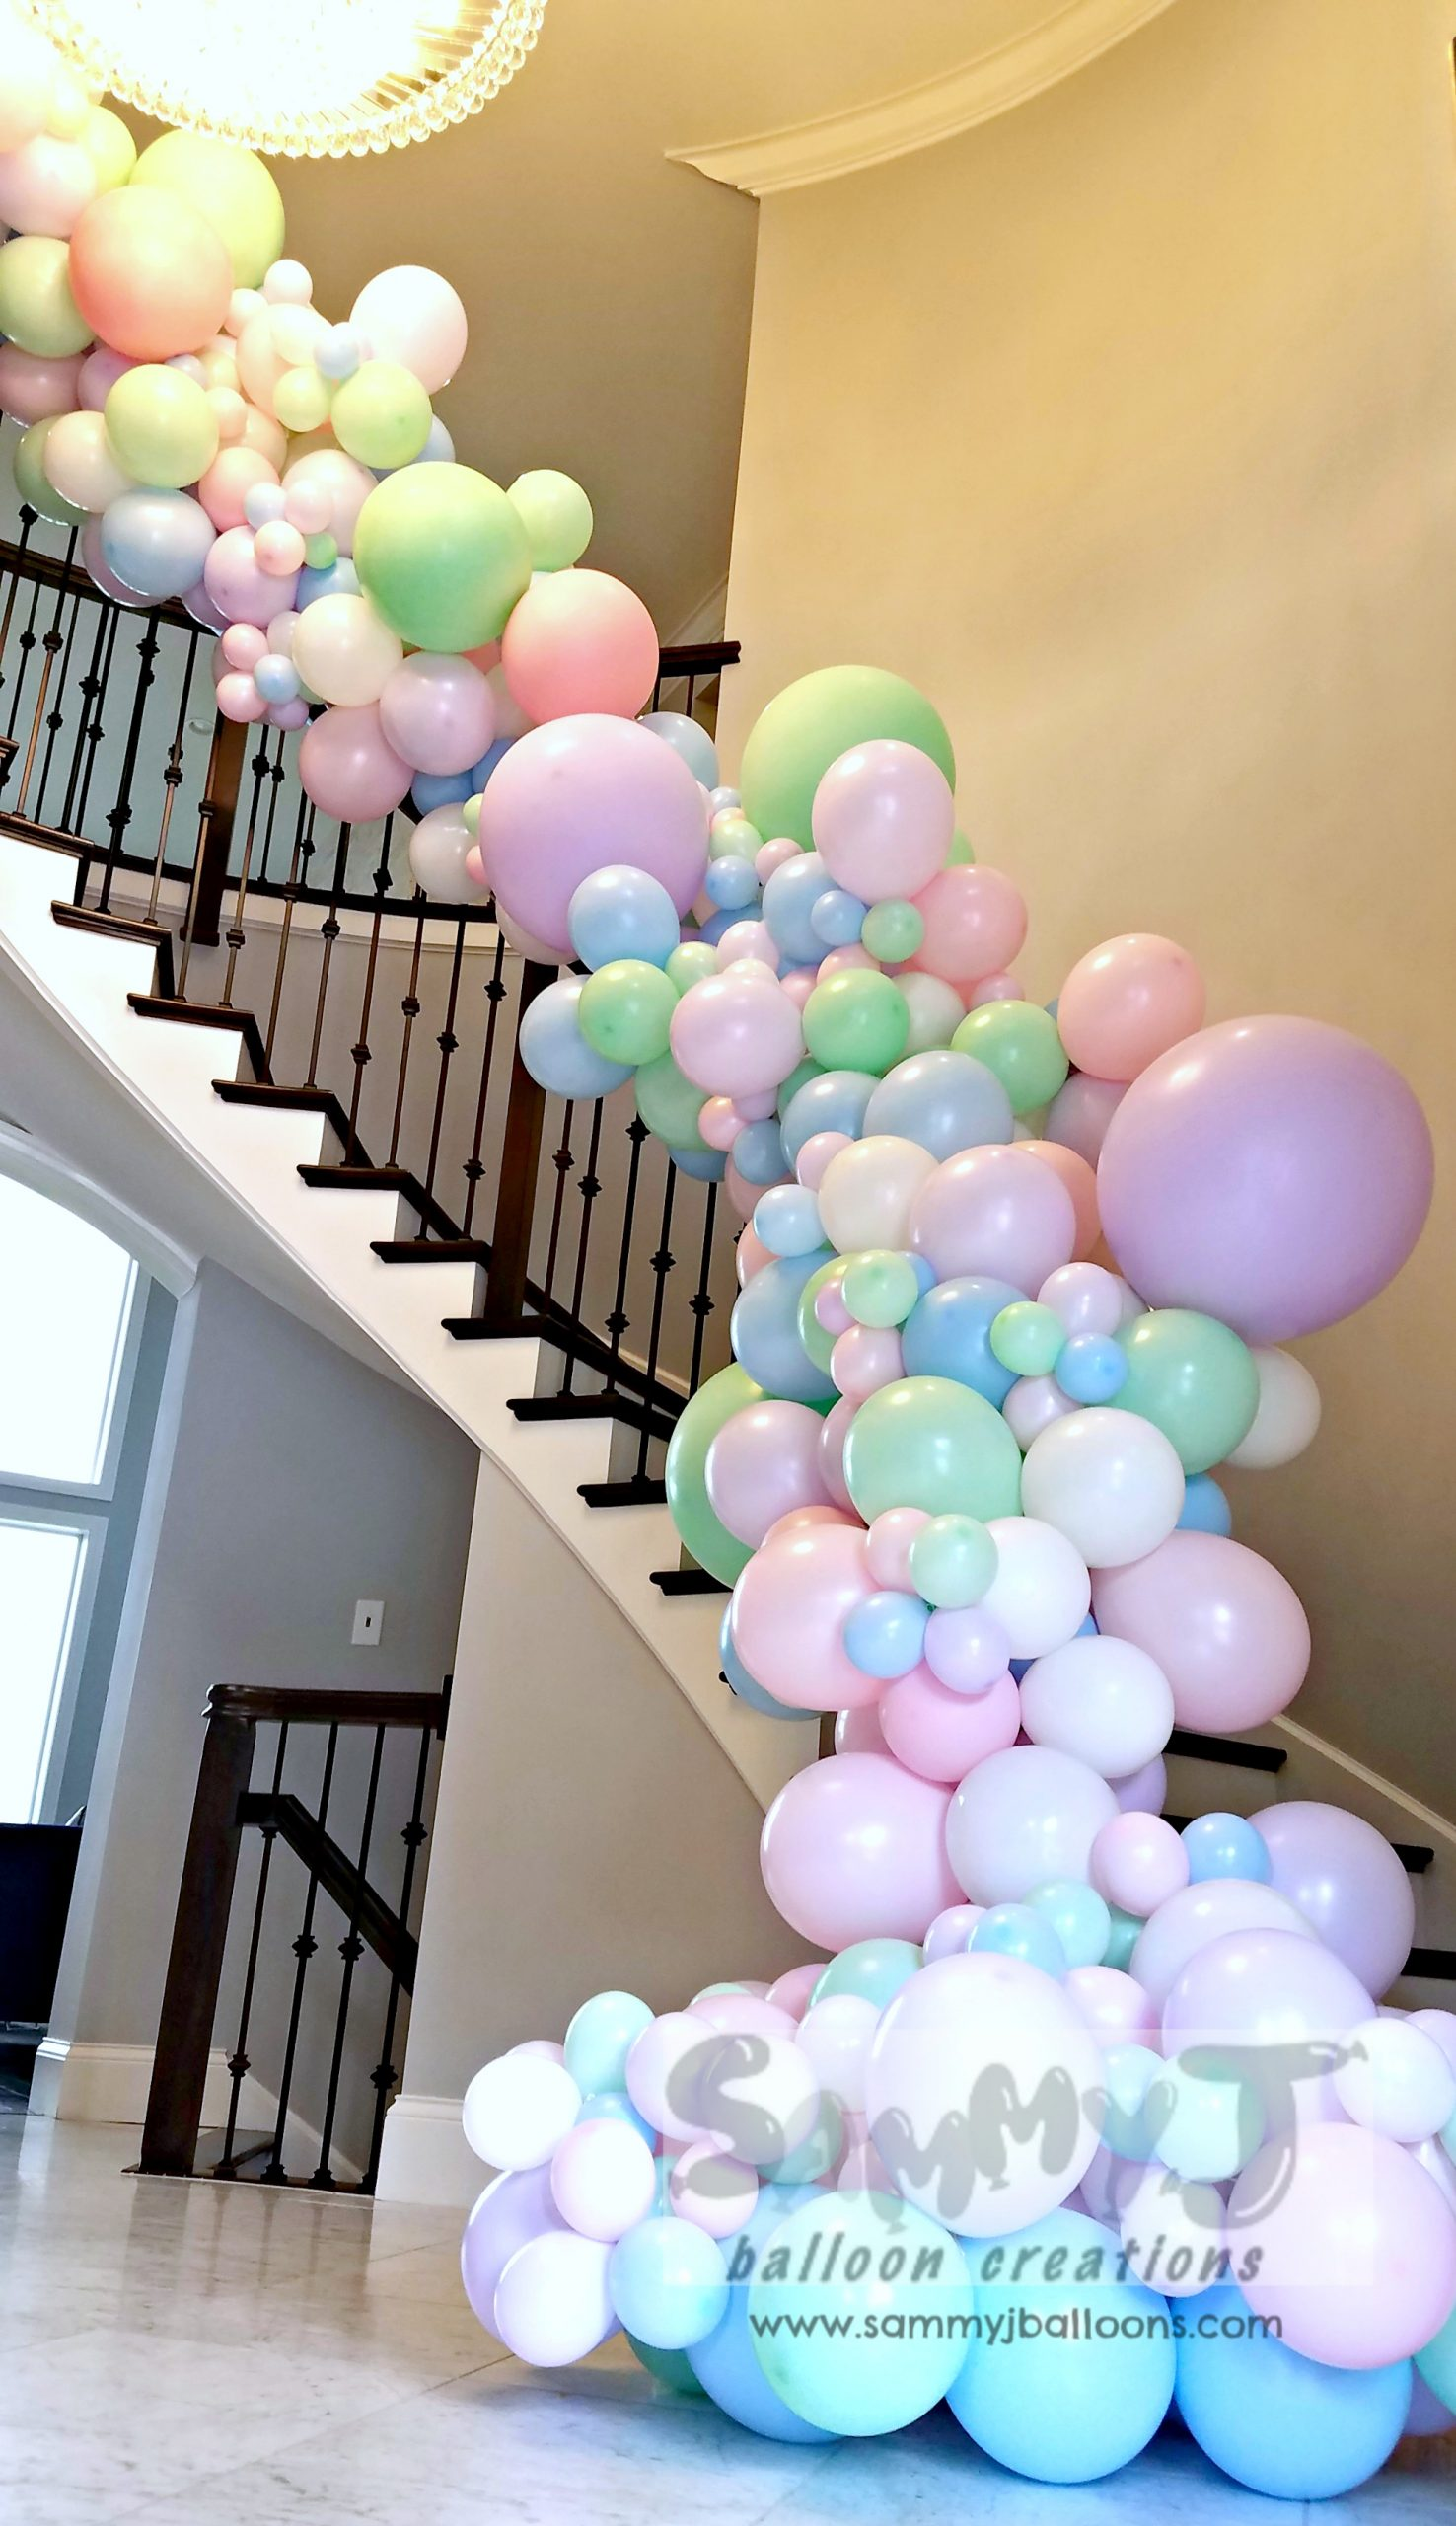 SAMMY J Balloon Creations st louis balloons organic garland staircase